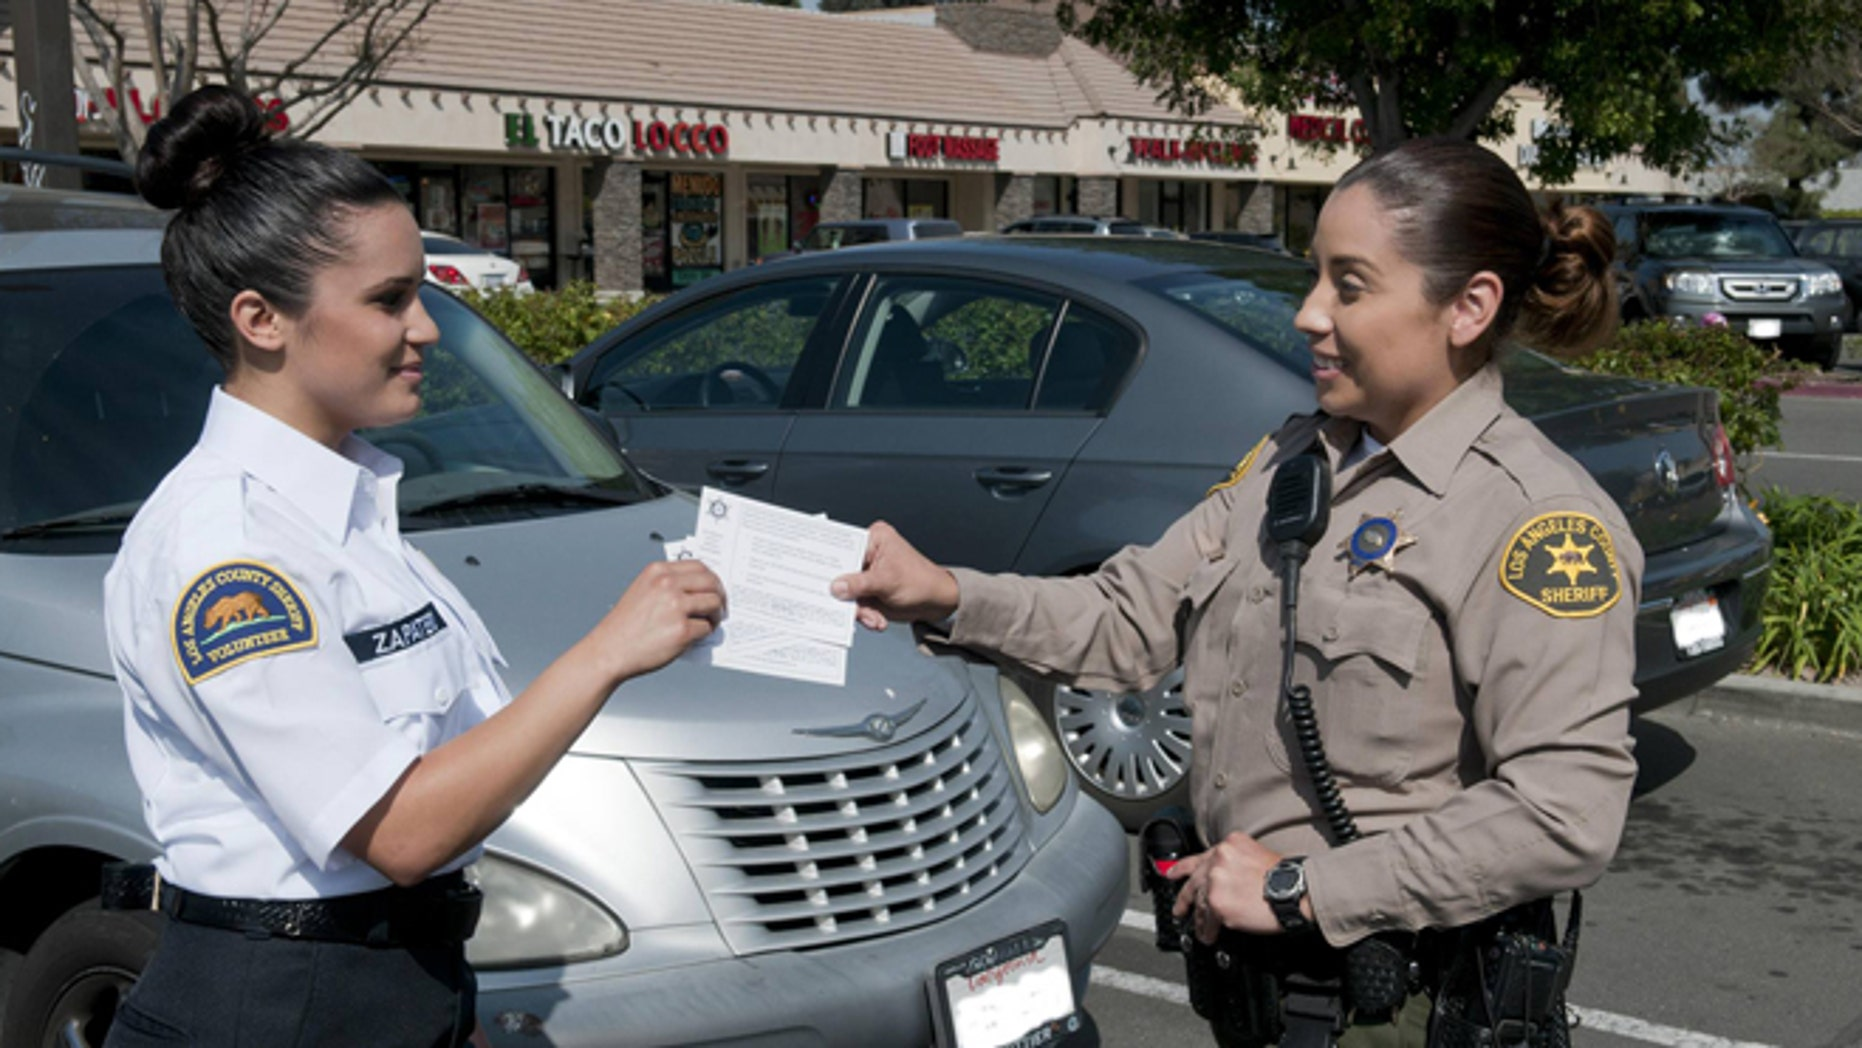 A deputy hands crime prevention tips to a Los Angeles County Sheriff's Department civilian volunteer, who are now allowed to issue parking violations to Malibu residents. (Courtesy: LASCD)